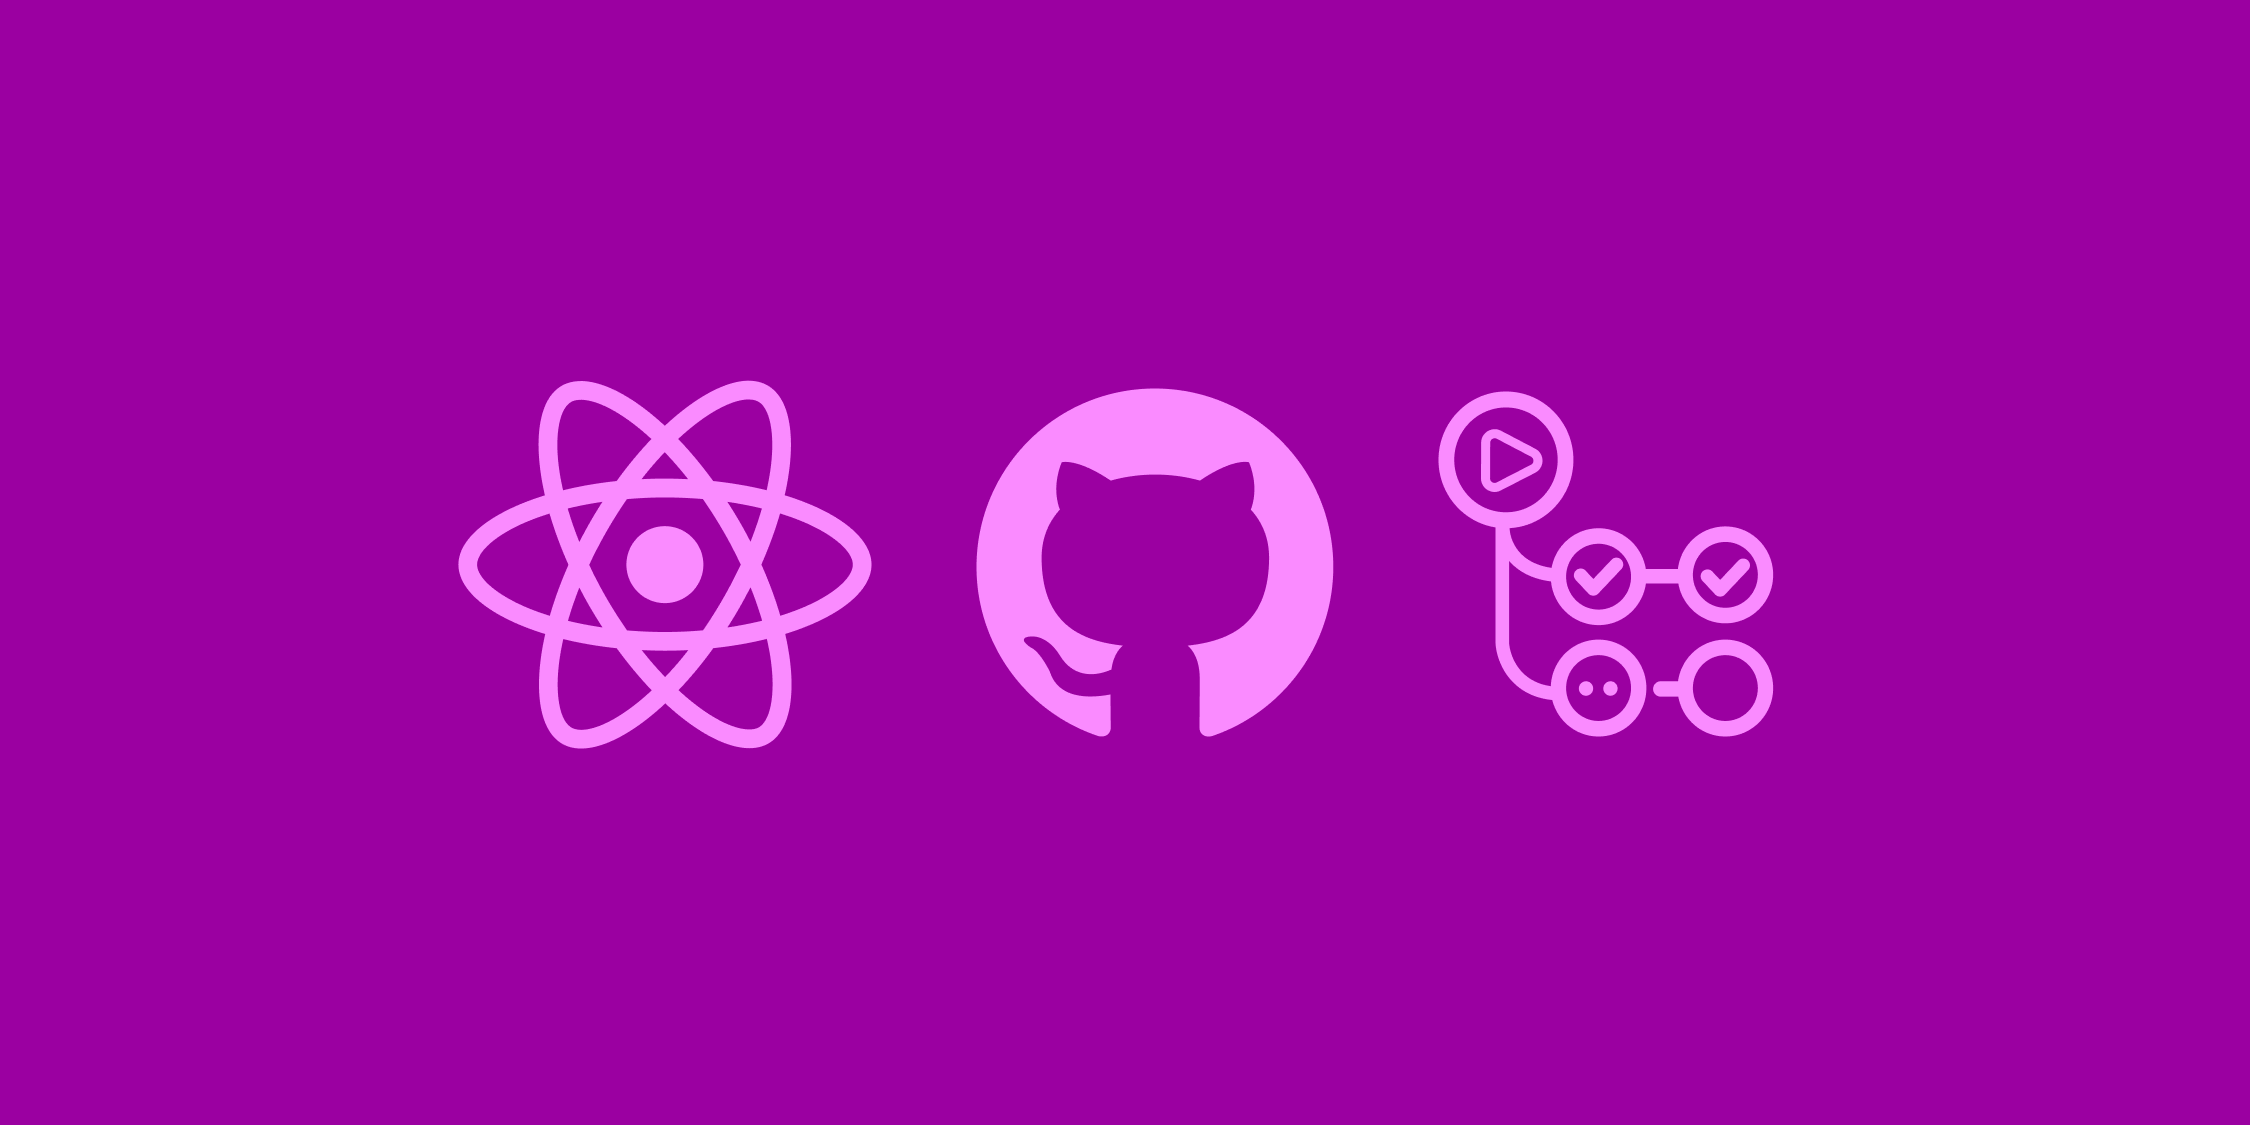 Cover image for this article featuring React's logo, GitHub's logo, and GitHub Actions logo.